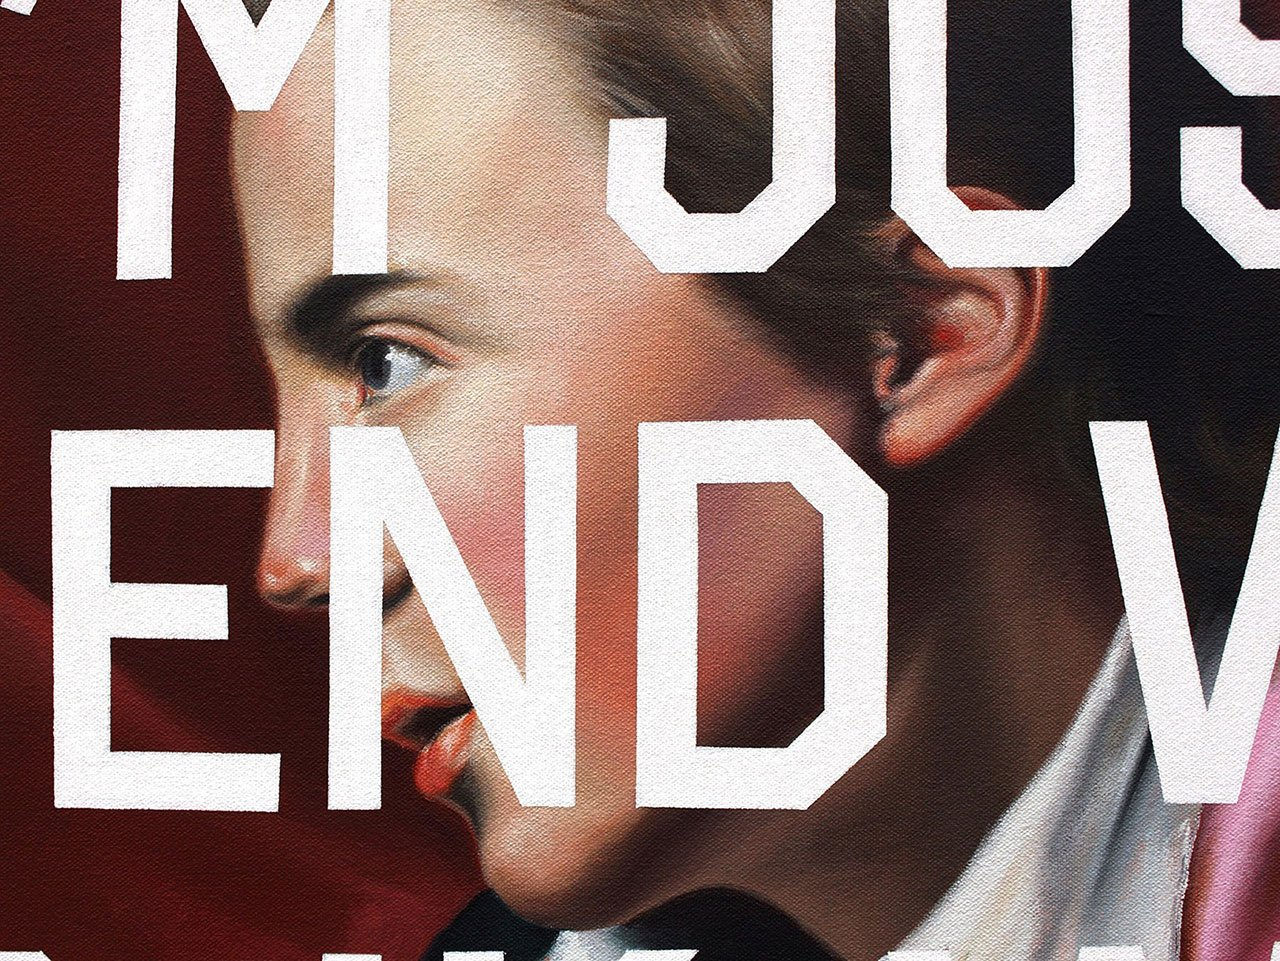 Shawn Huckins, Henry Pelham's Jocular Tweet: To Dante - If I'm Just A Friend, Why Do I Know What Your Lips Feel Like? (detail), acrylic on canvas, 44 x 36 in (112 x 91 cm), 2011. Private collection.